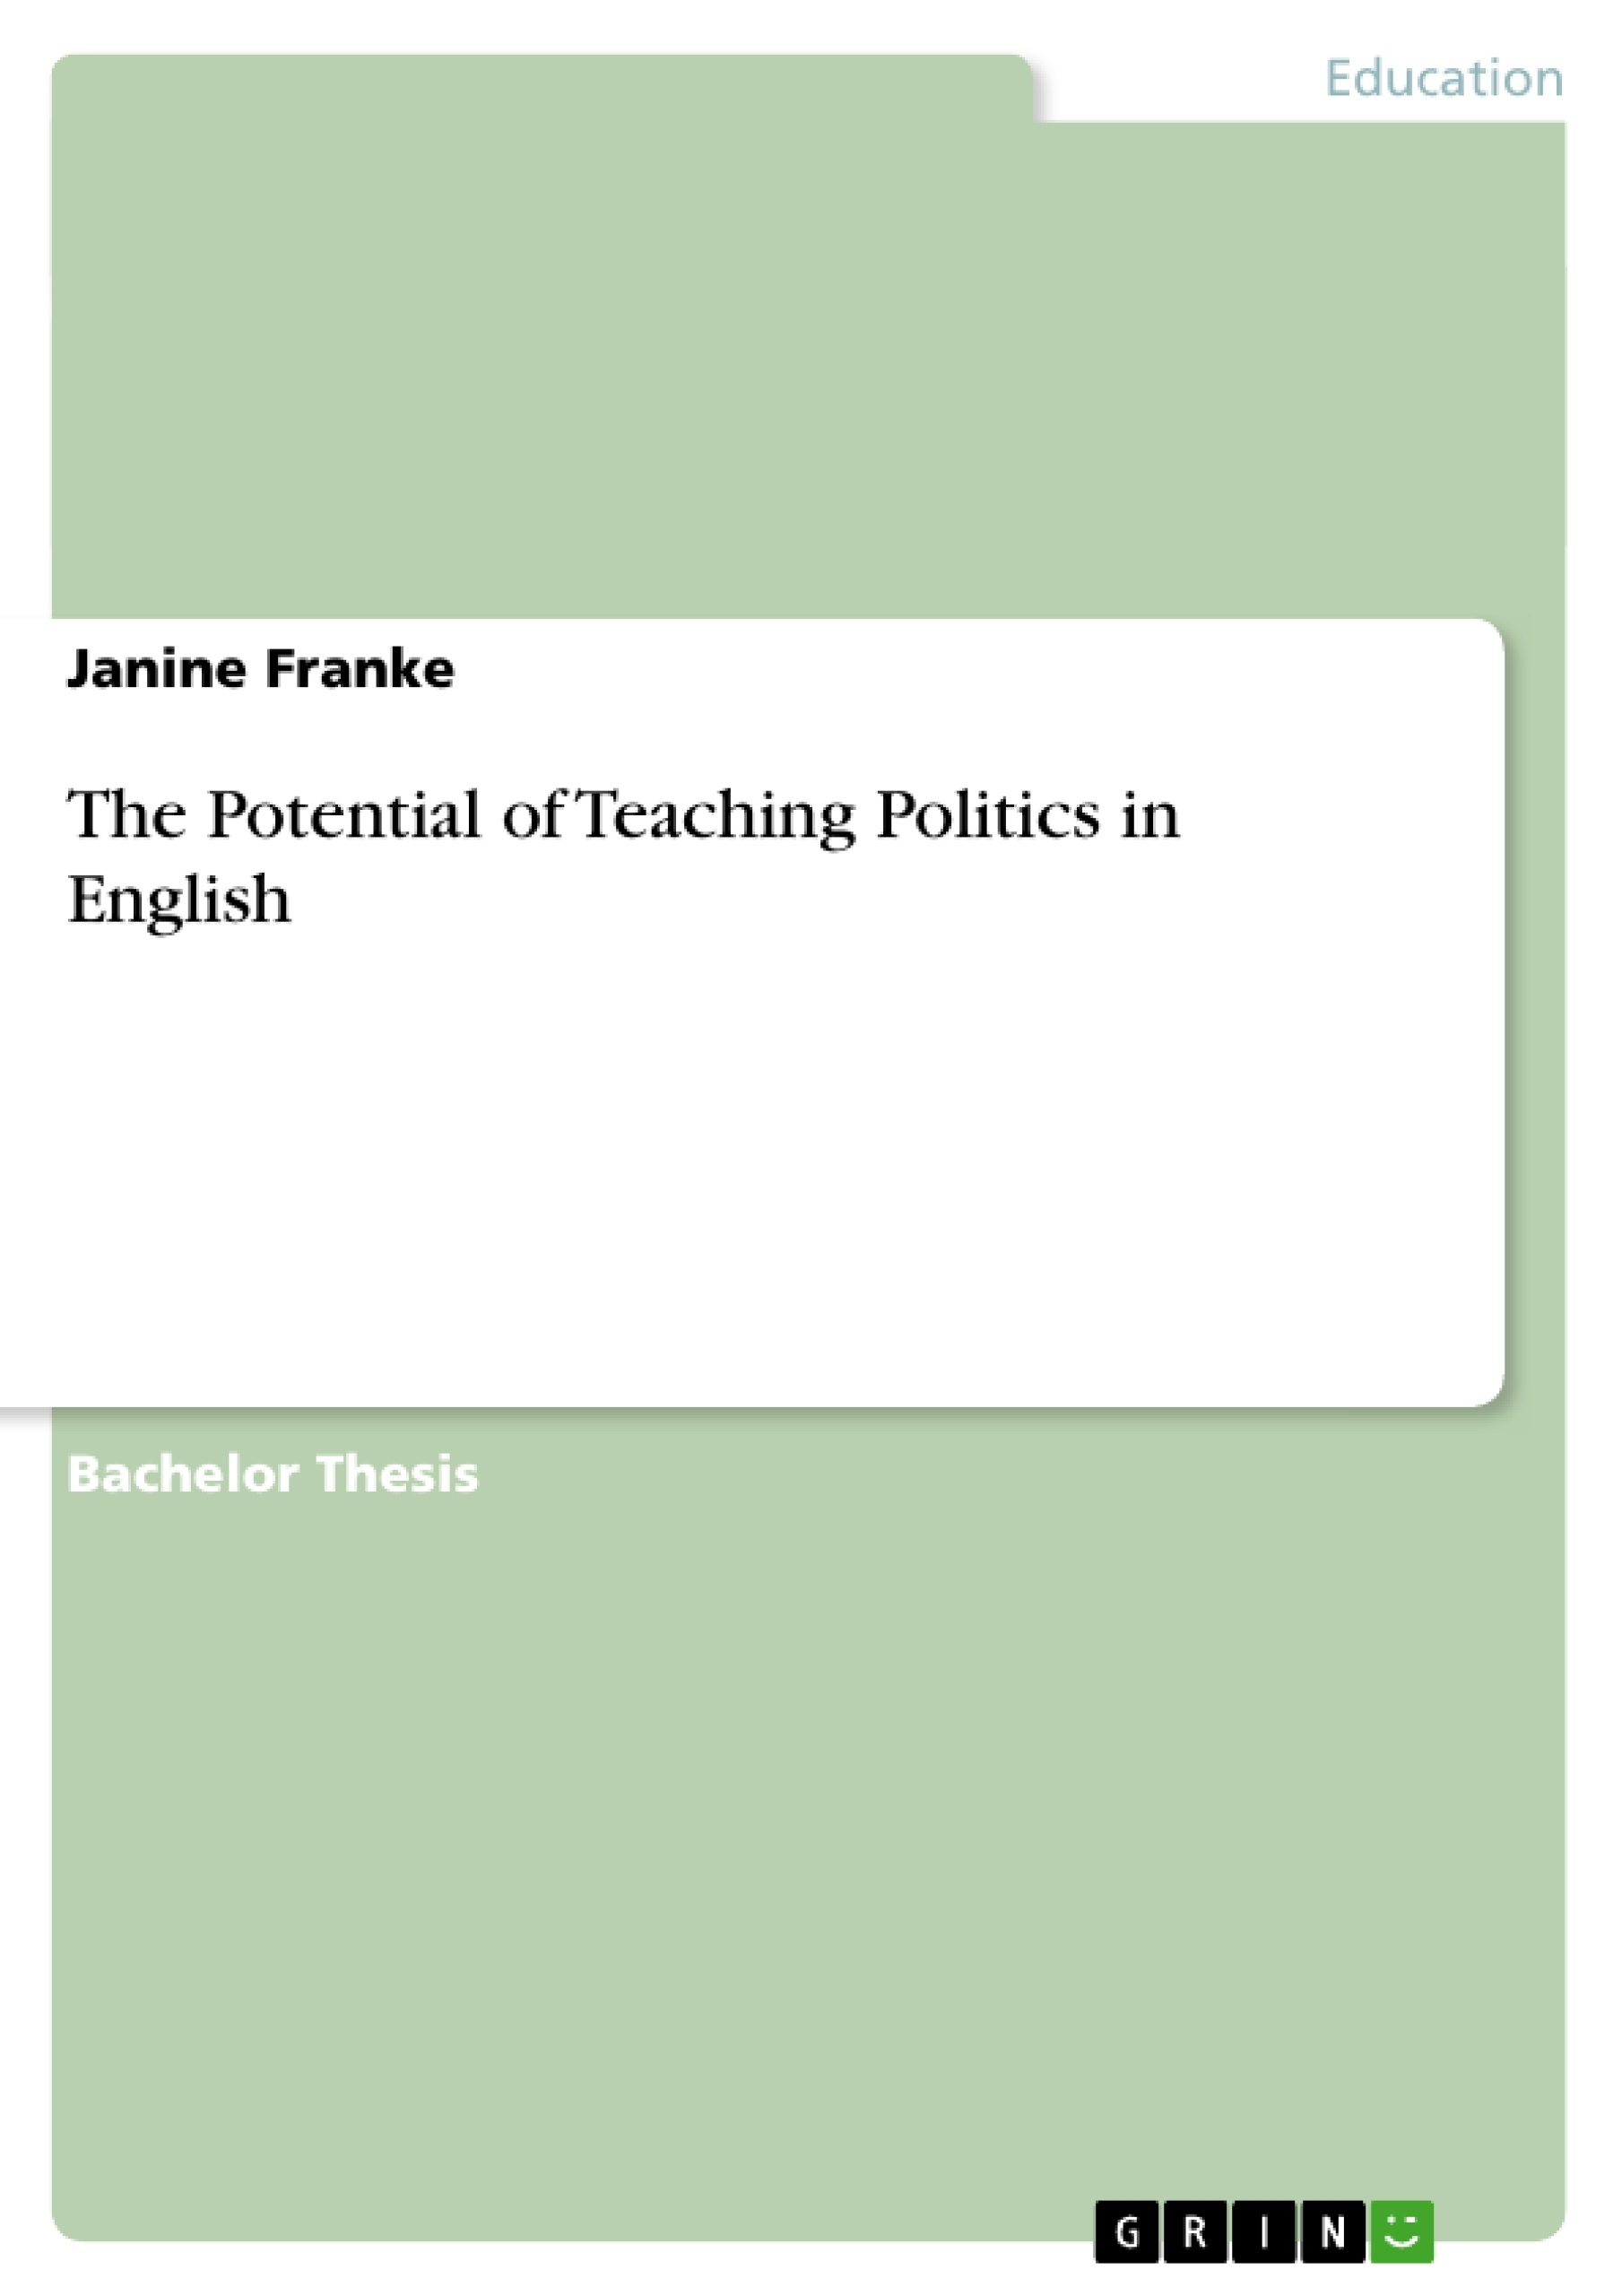 Title: The Potential of Teaching Politics in English